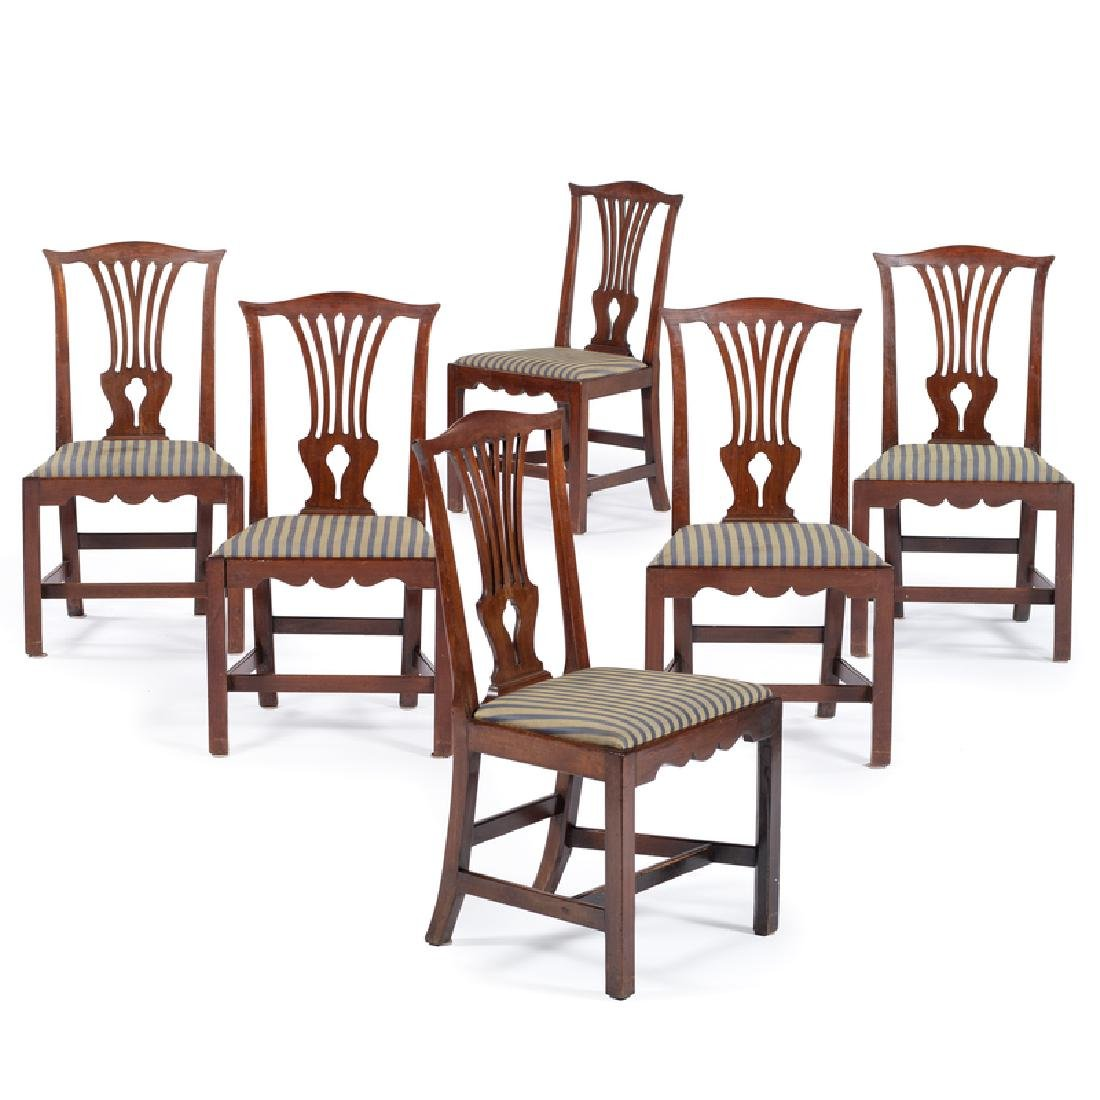 George III Chippendale Dining Chairs